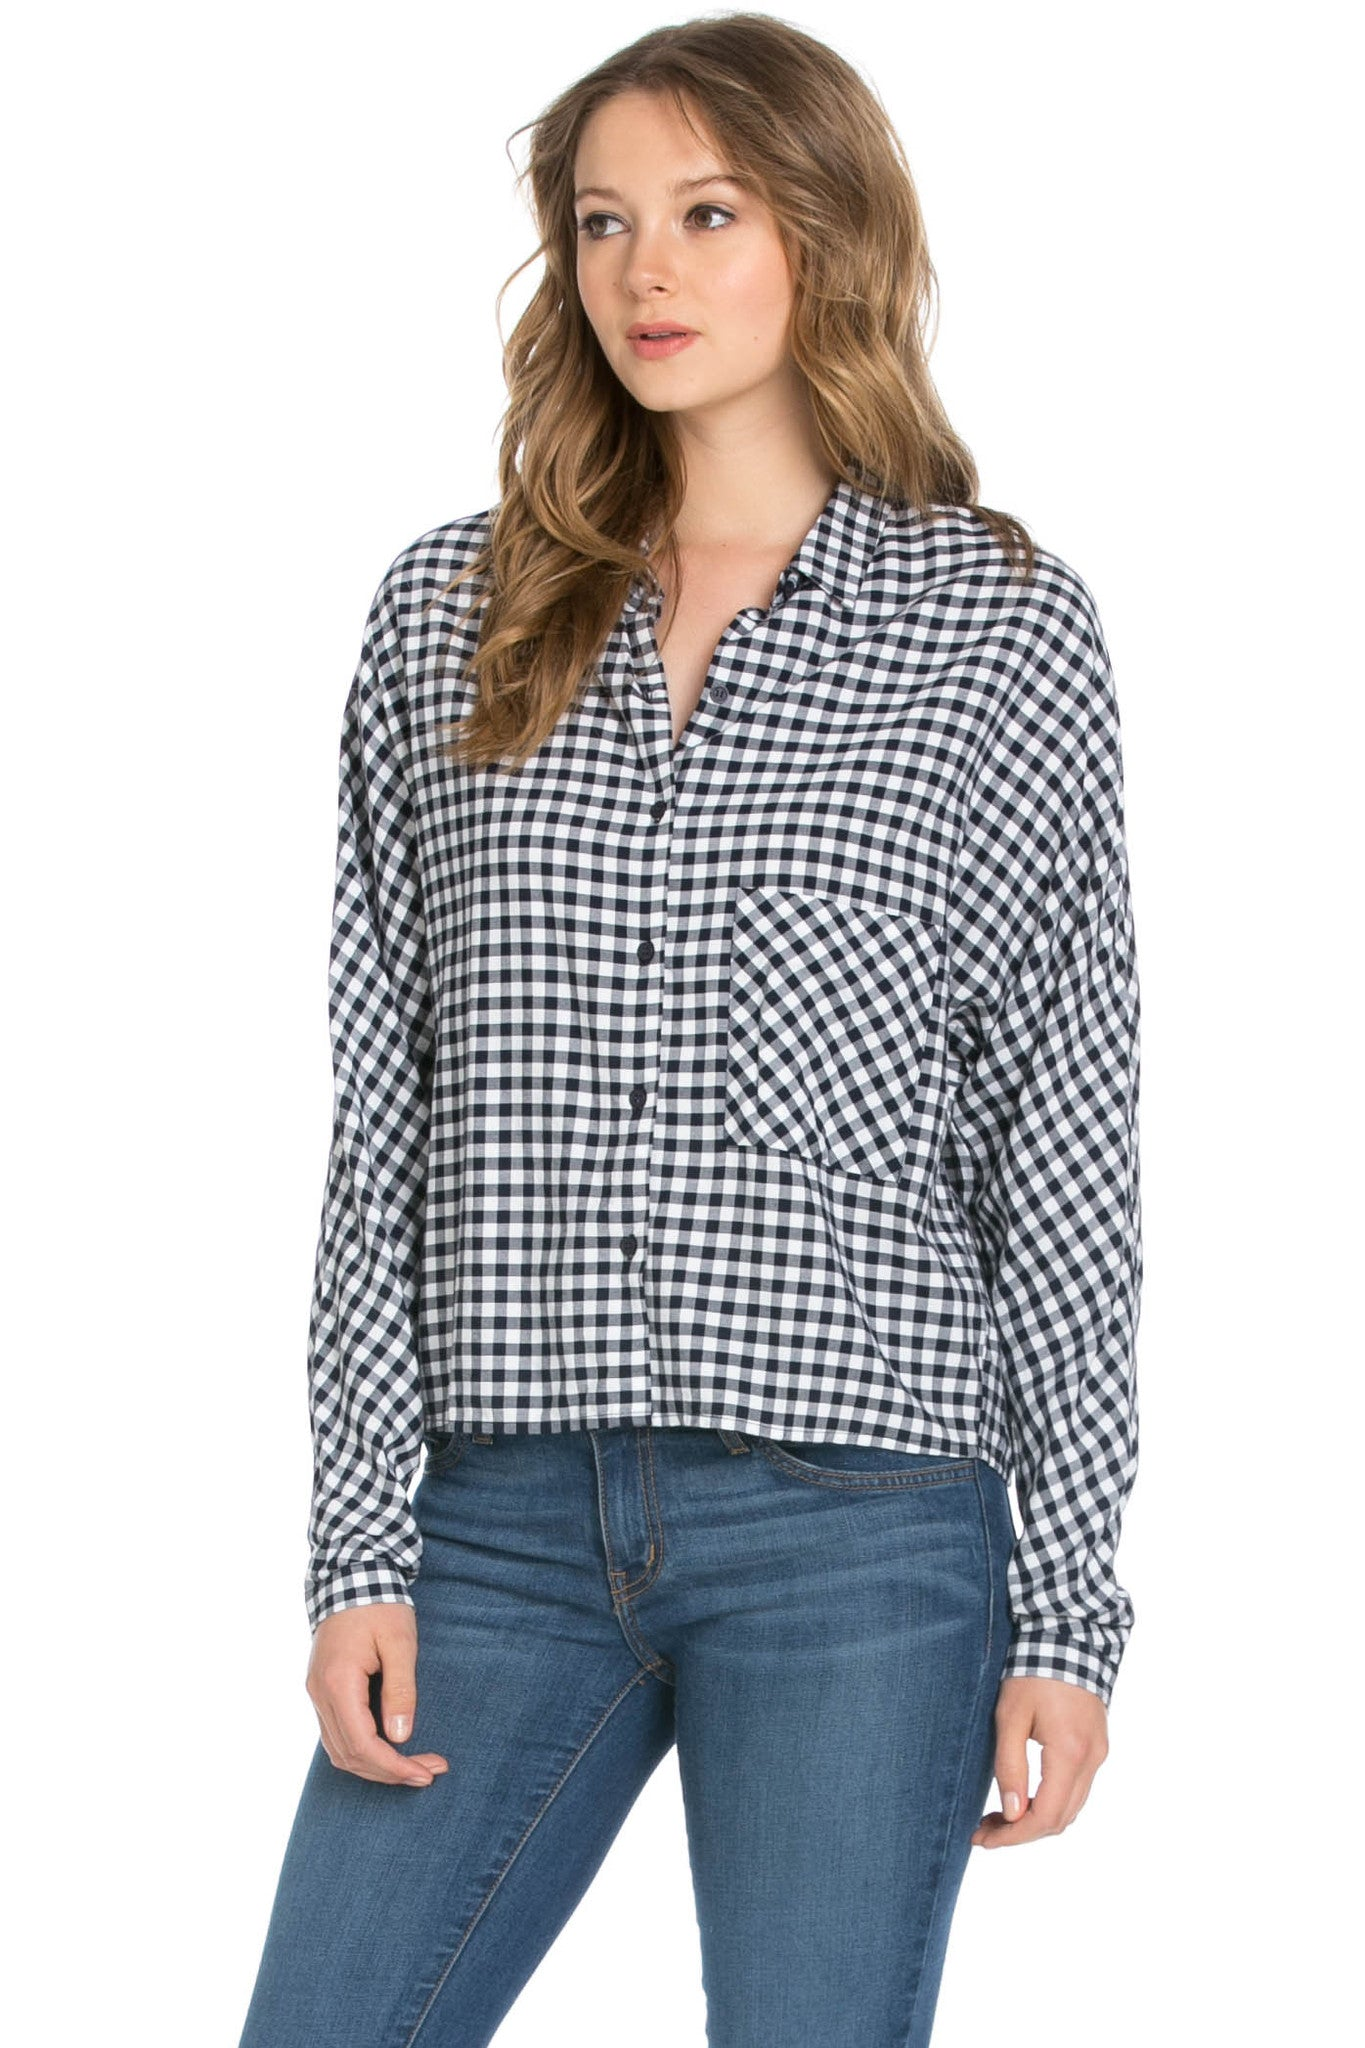 Gingham Shirt Navy White - Shirts - My Yuccie - 2